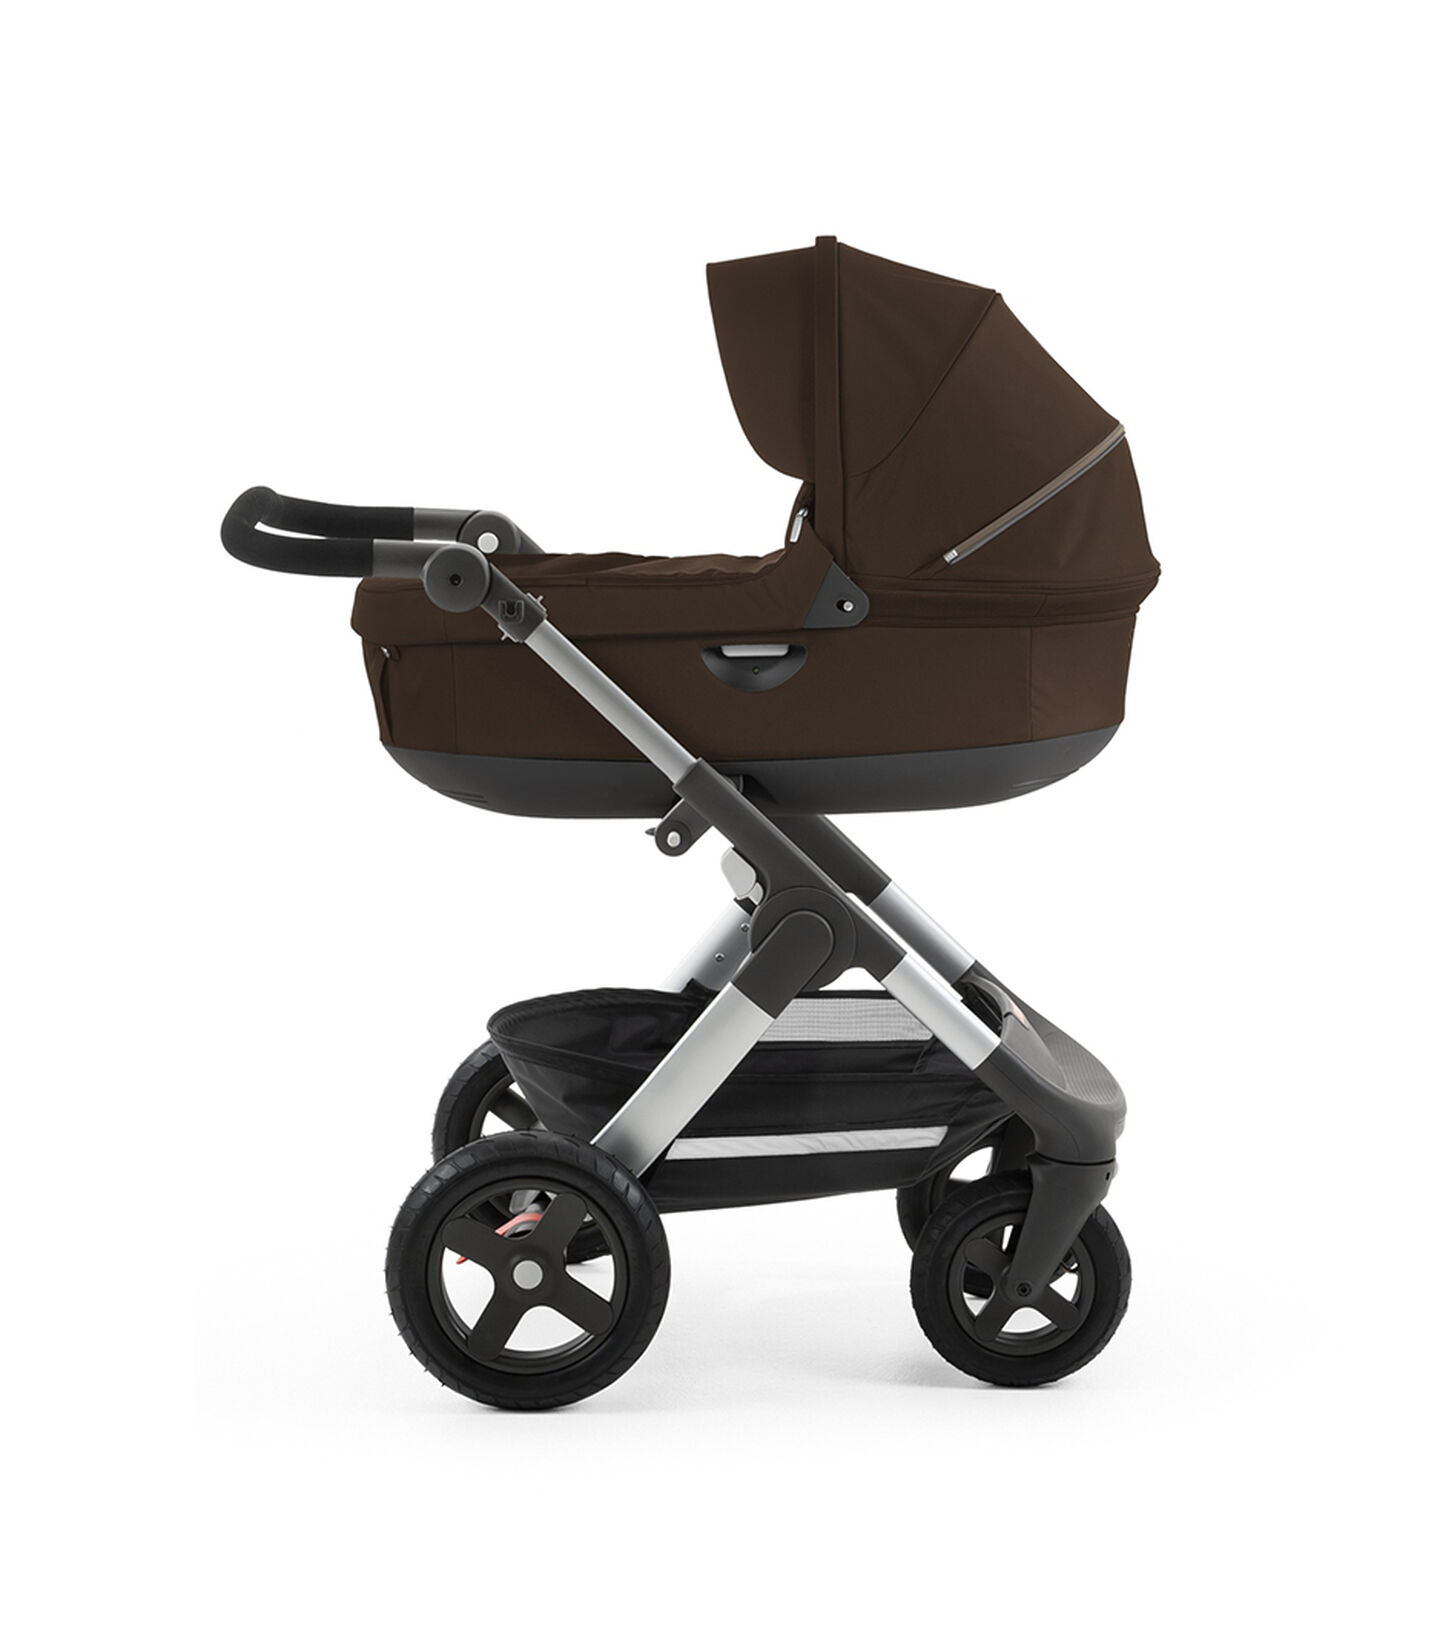 Stokke® Trailz™ Terrain w Carry Cot Brown, Brown, mainview view 1